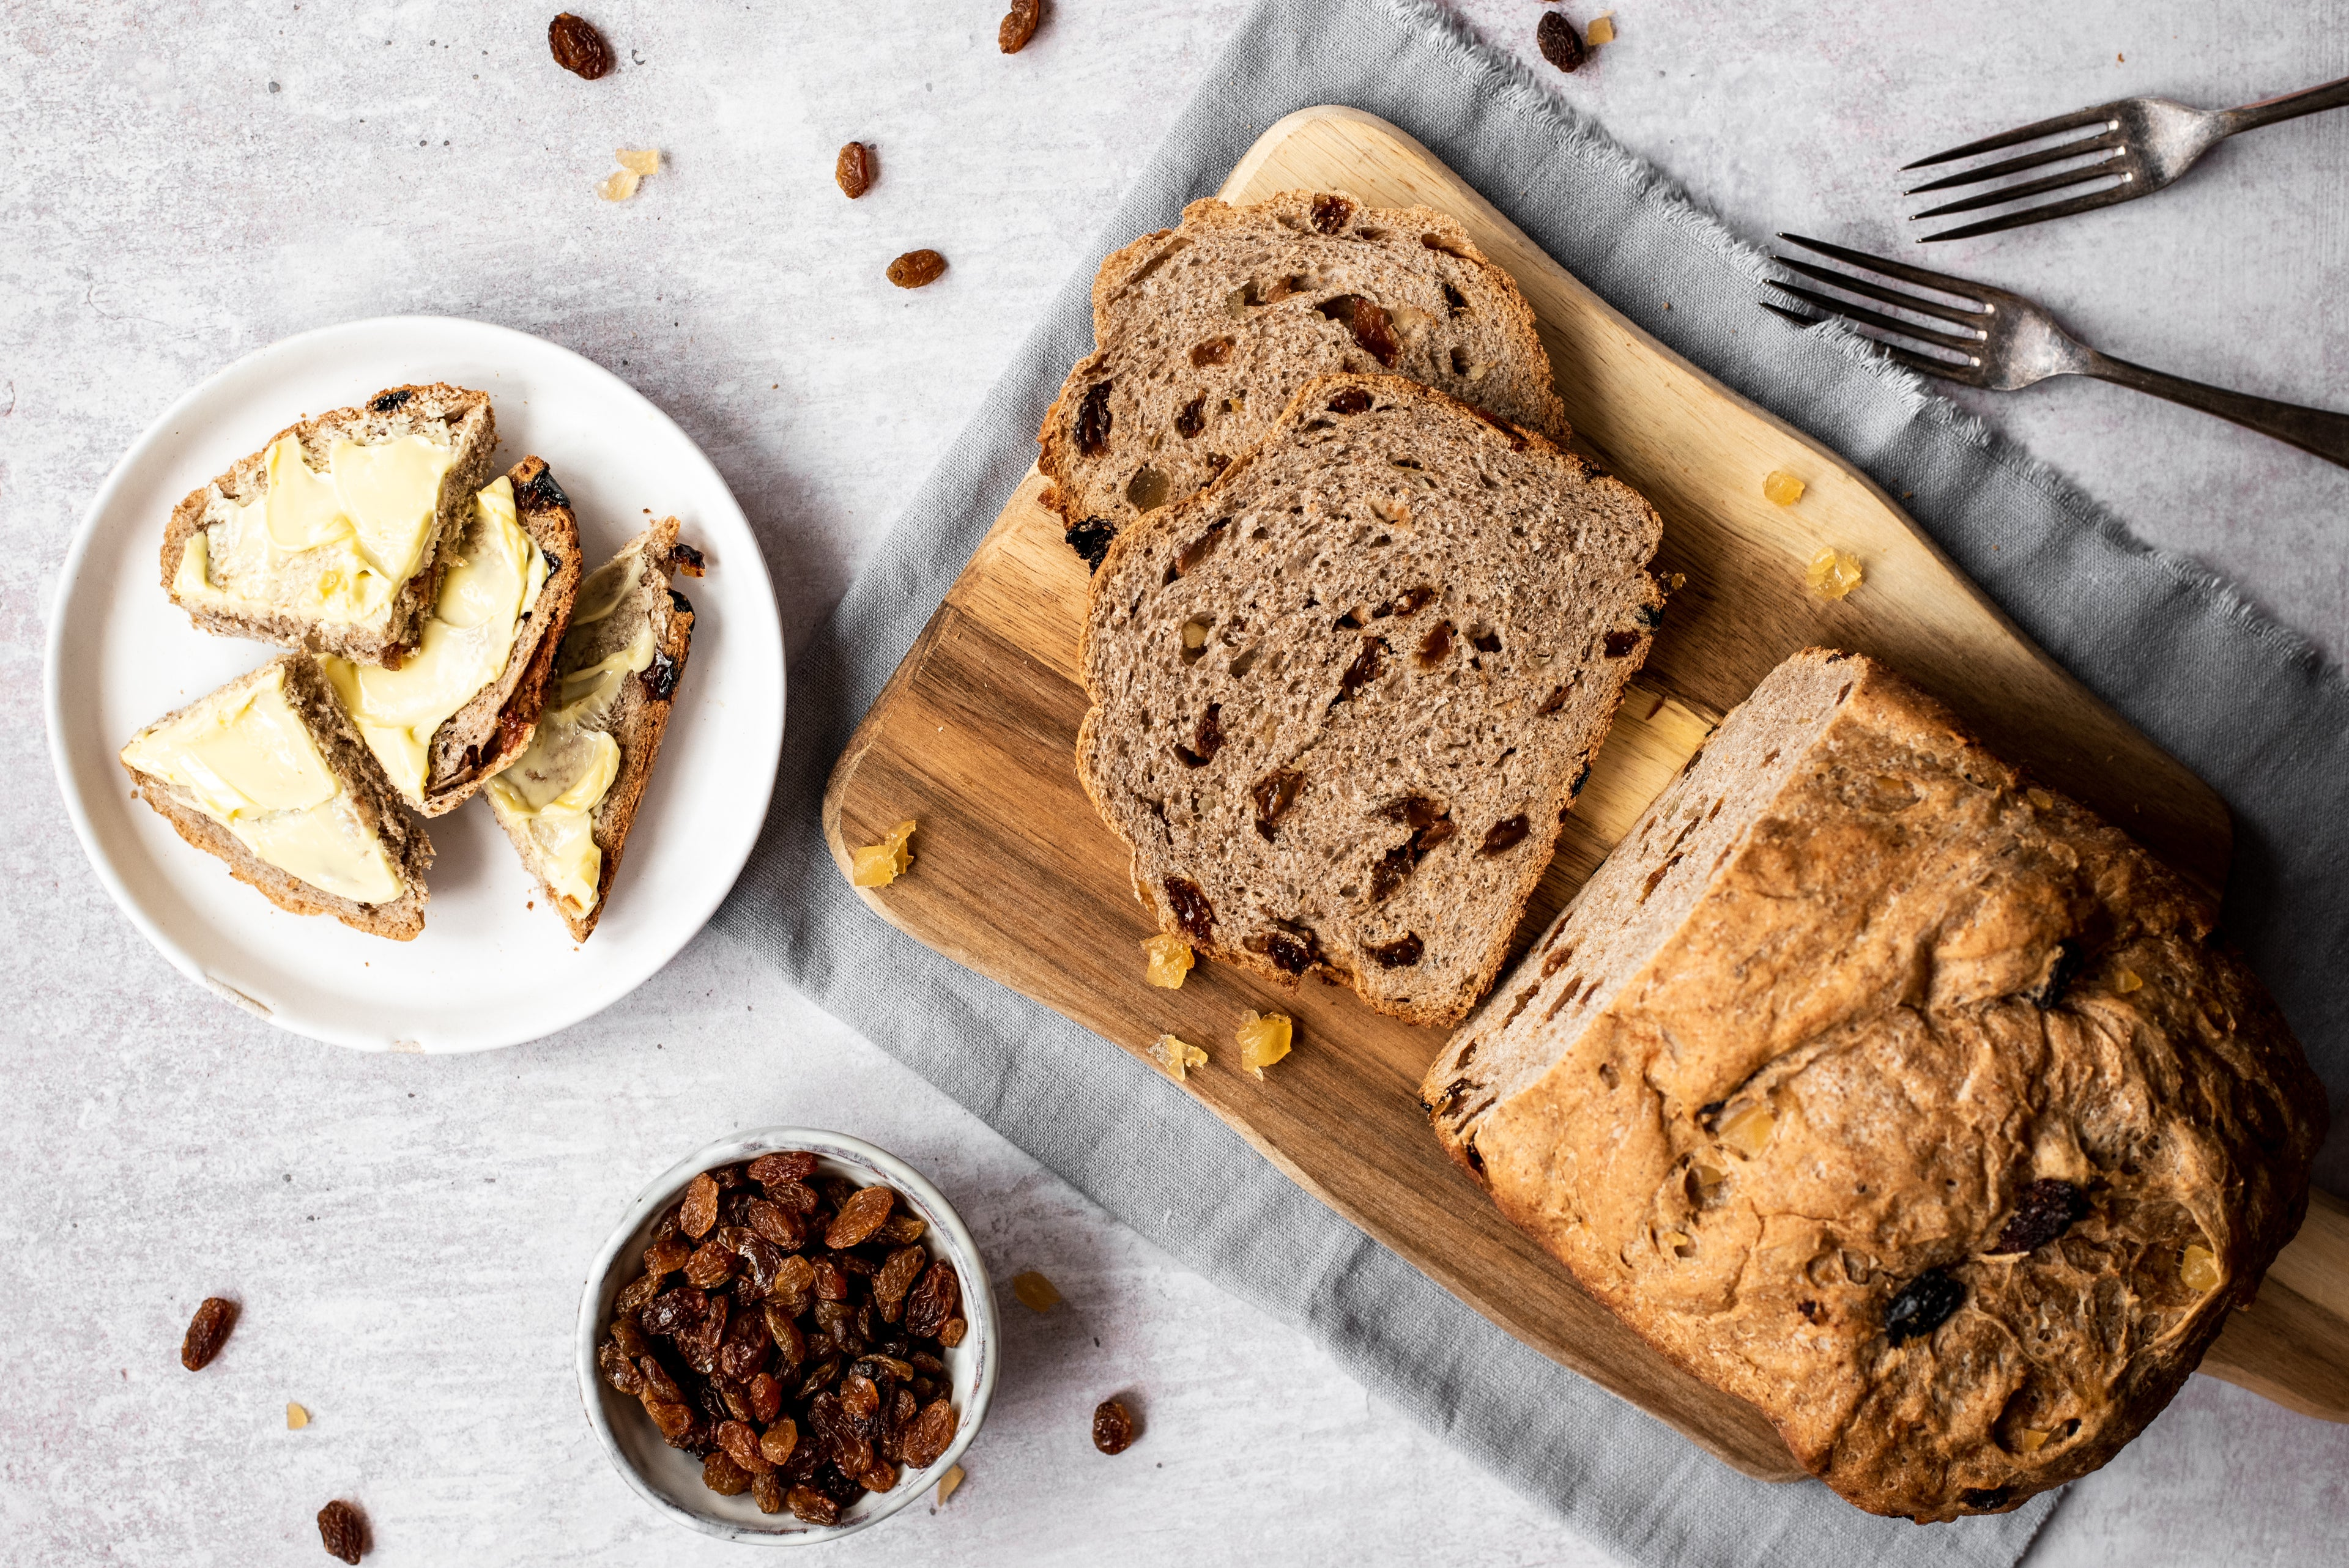 Overhead of fruit bread with slices cut. Plate with buttered slices. Bowl of sultanas. Two forks